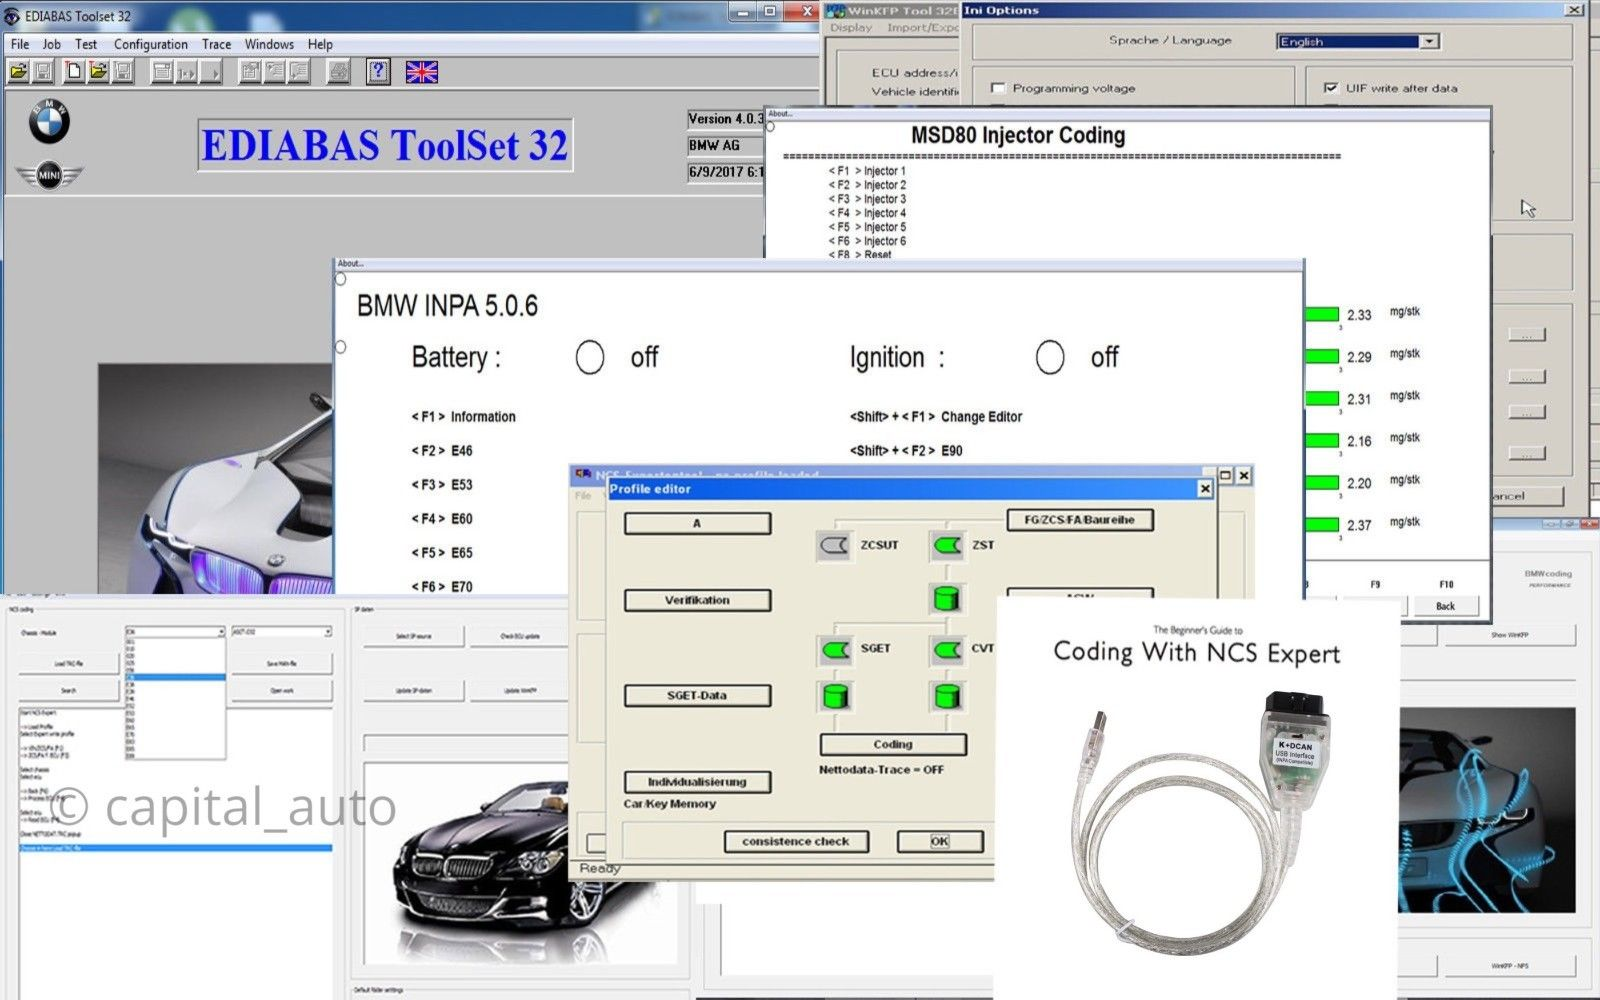 Great BMW K + DCAN OBD2 USB Cable FTDI FT232RL + BMW Tools INPA EDIABAS NCS  EXPERT 2017 2018